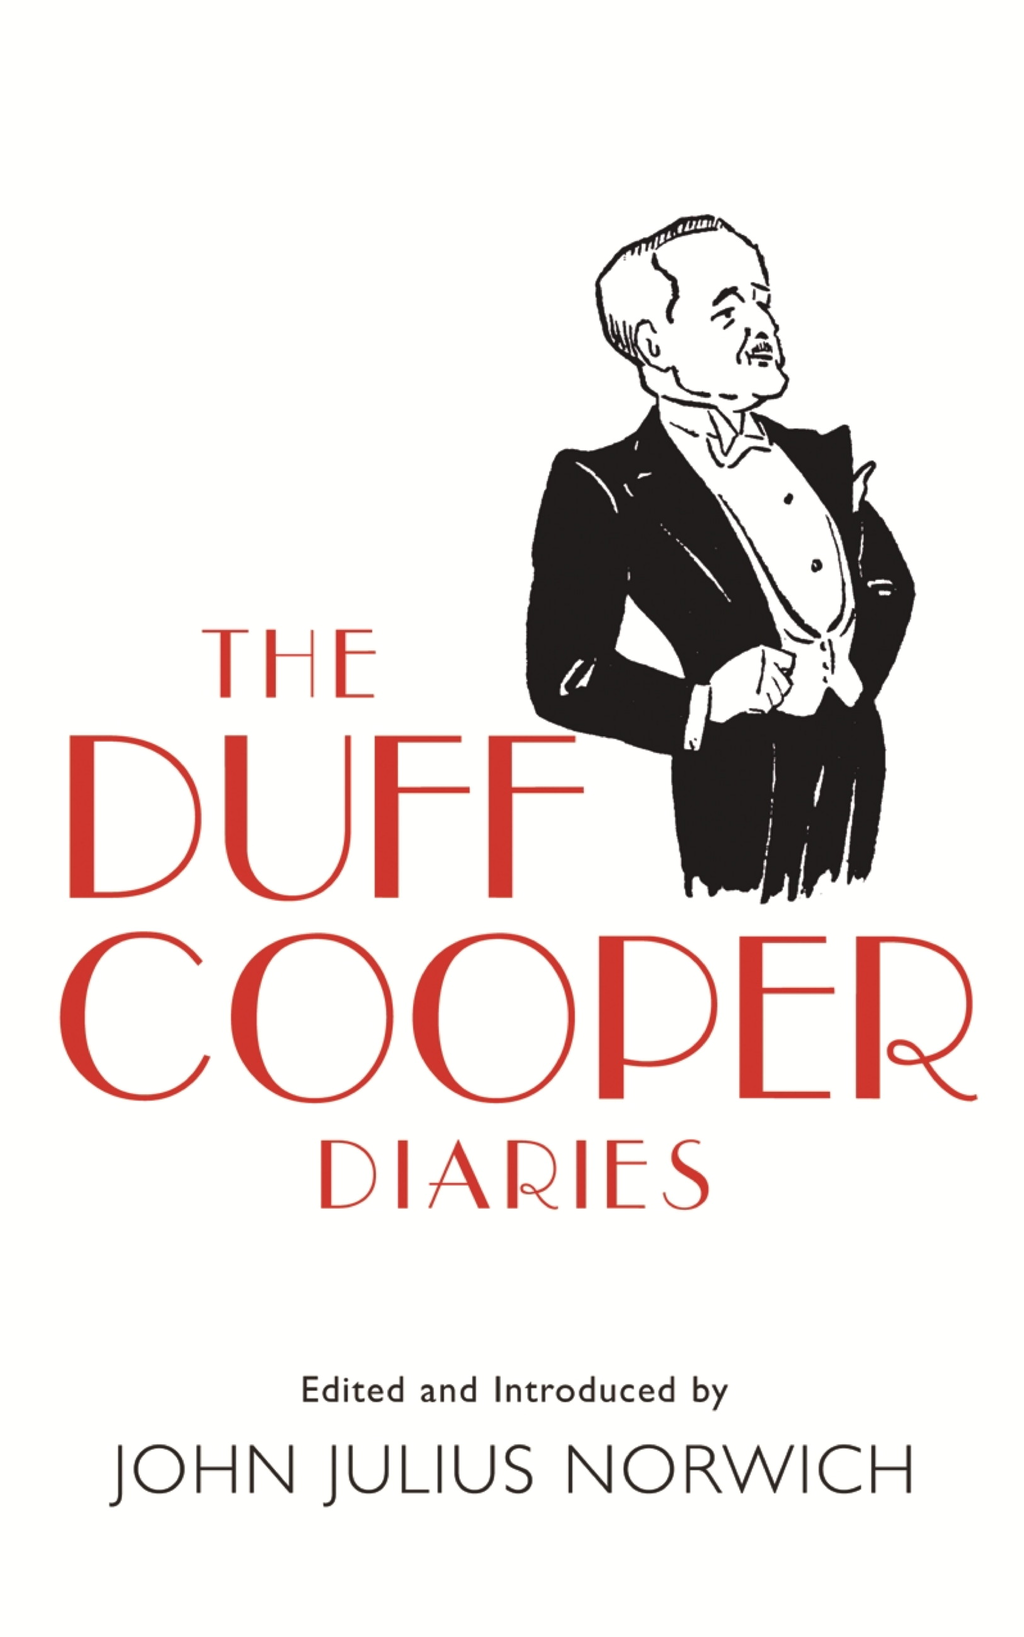 The Duff Cooper Diaries 1915-1951